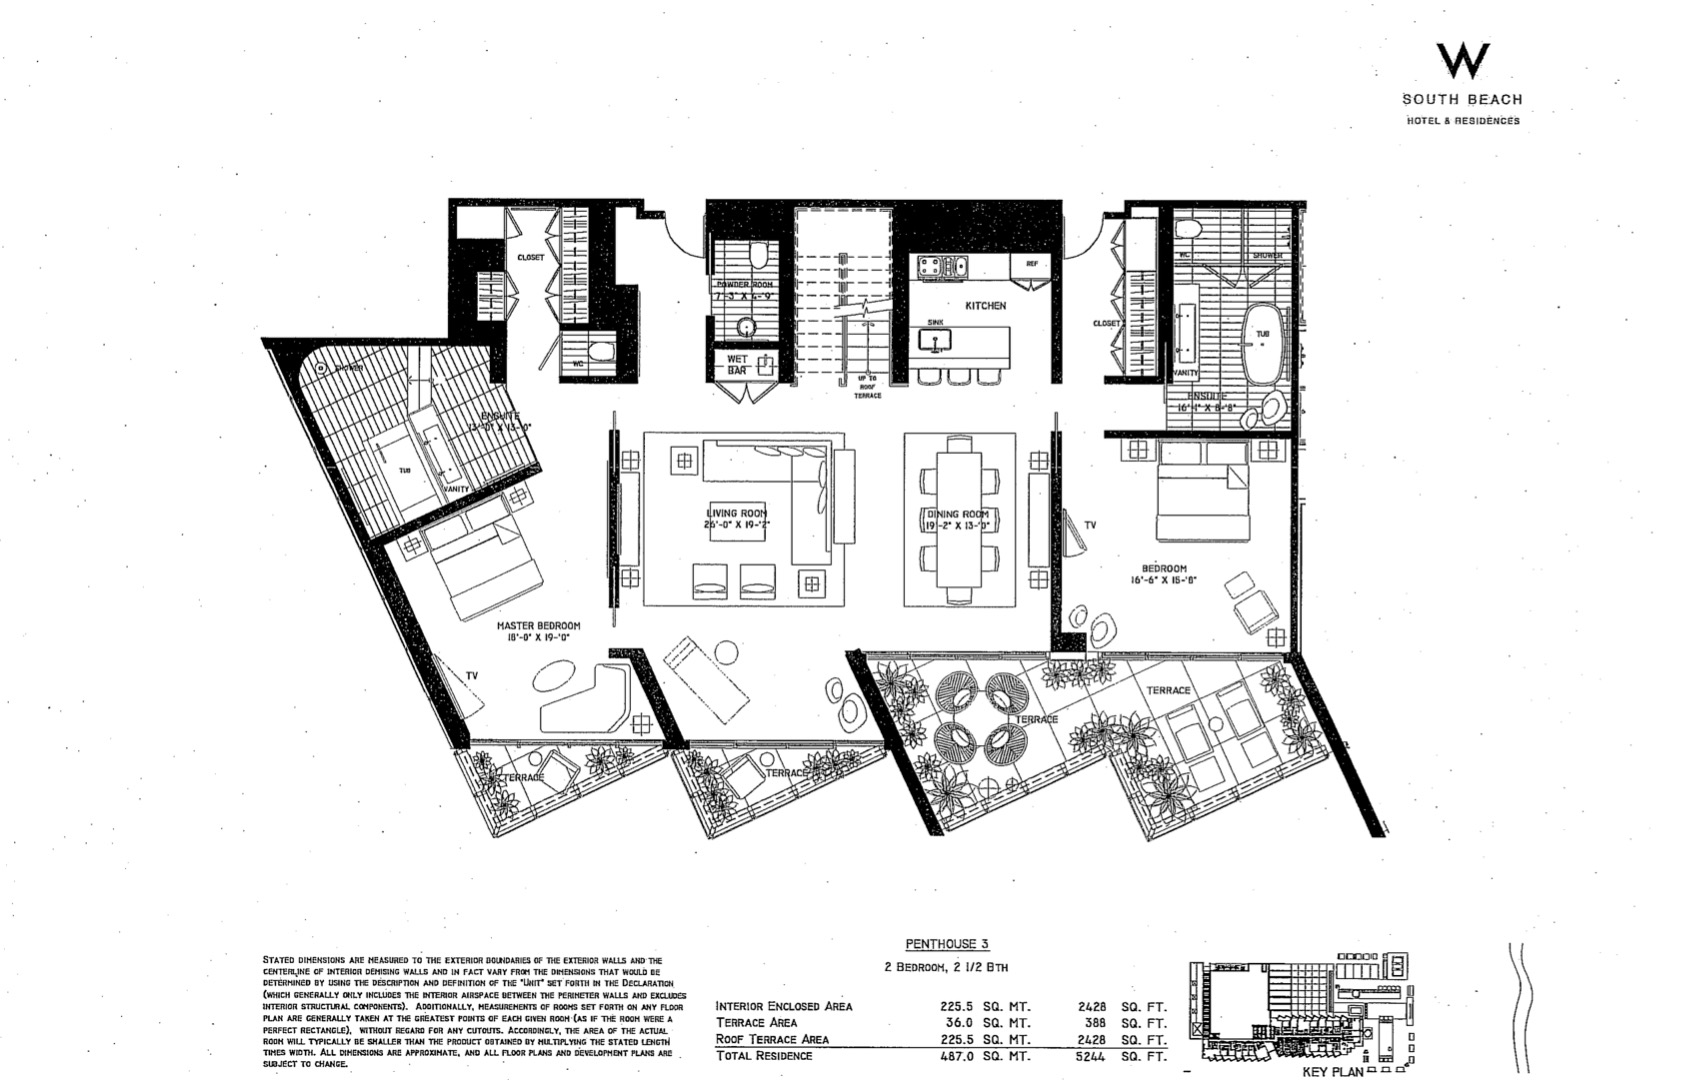 Floor plan image W South Beach Penthouse 3 - 2/2/1  - 5244 sqft image